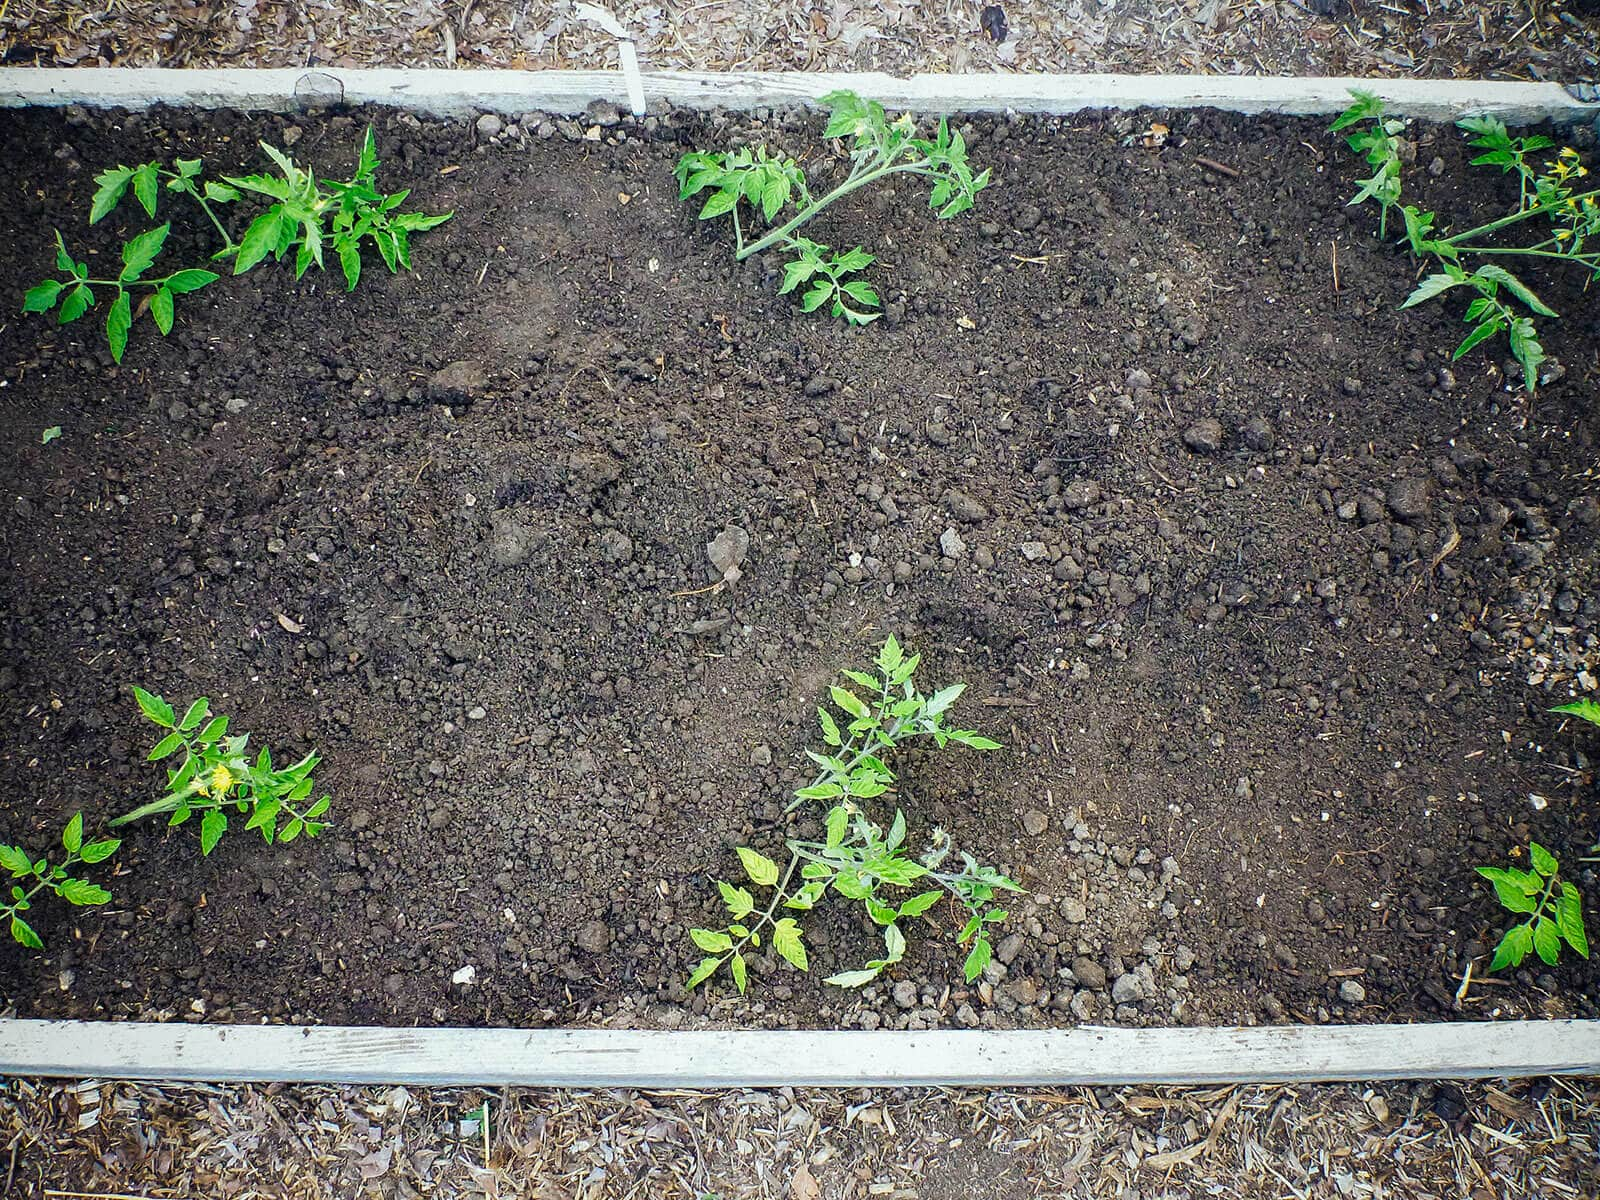 Tomato plants transplanted in trenches (troughs)